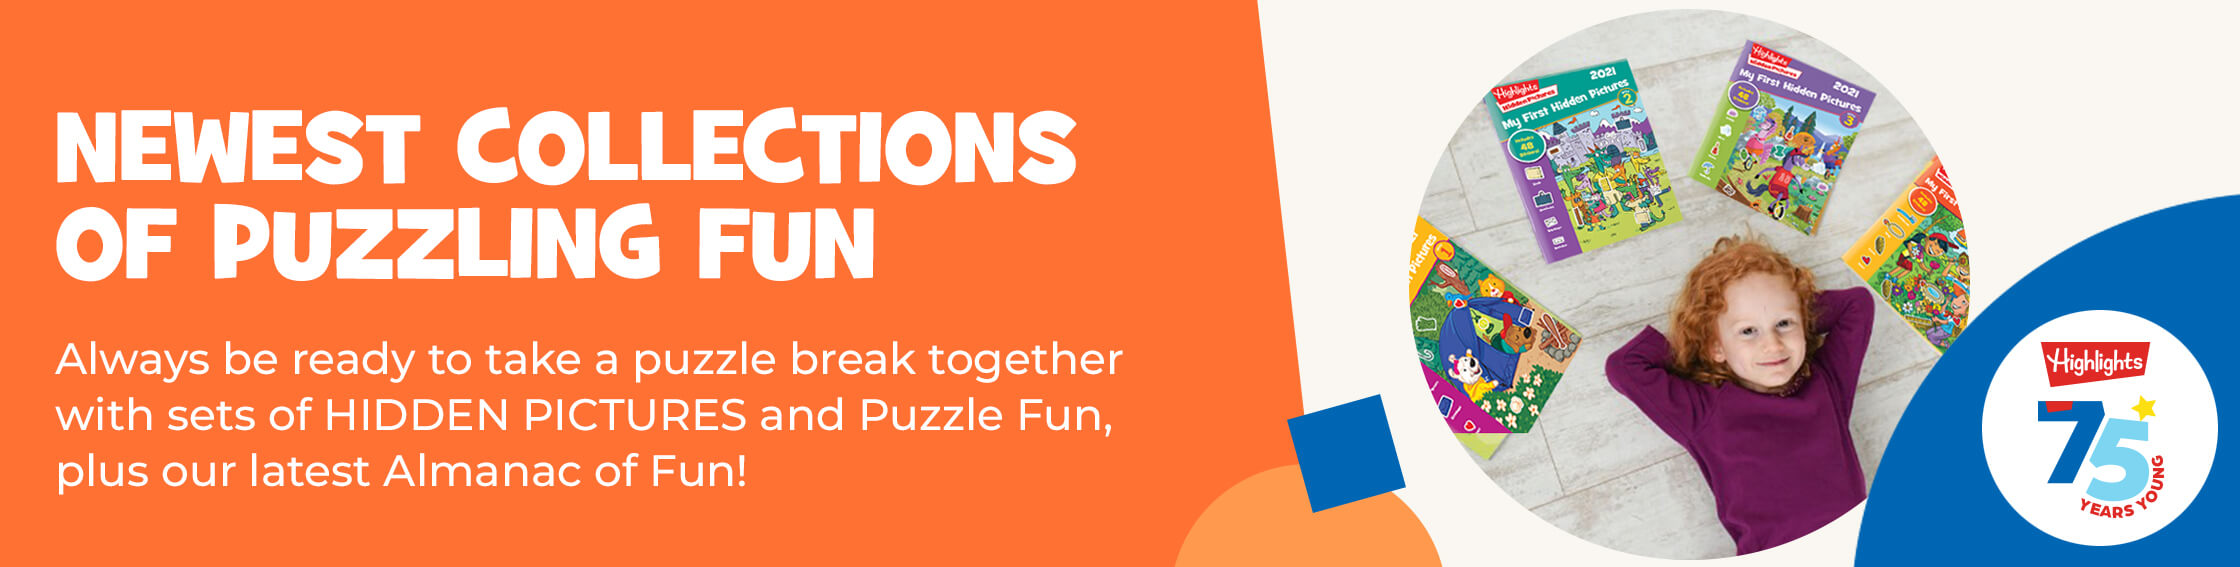 Find our newest collections of puzzling fun including annual 4-book sets of our iconic HIDDEN PICTURES, Puzzle Fun, and the latest edition of our Almanac of Fun!